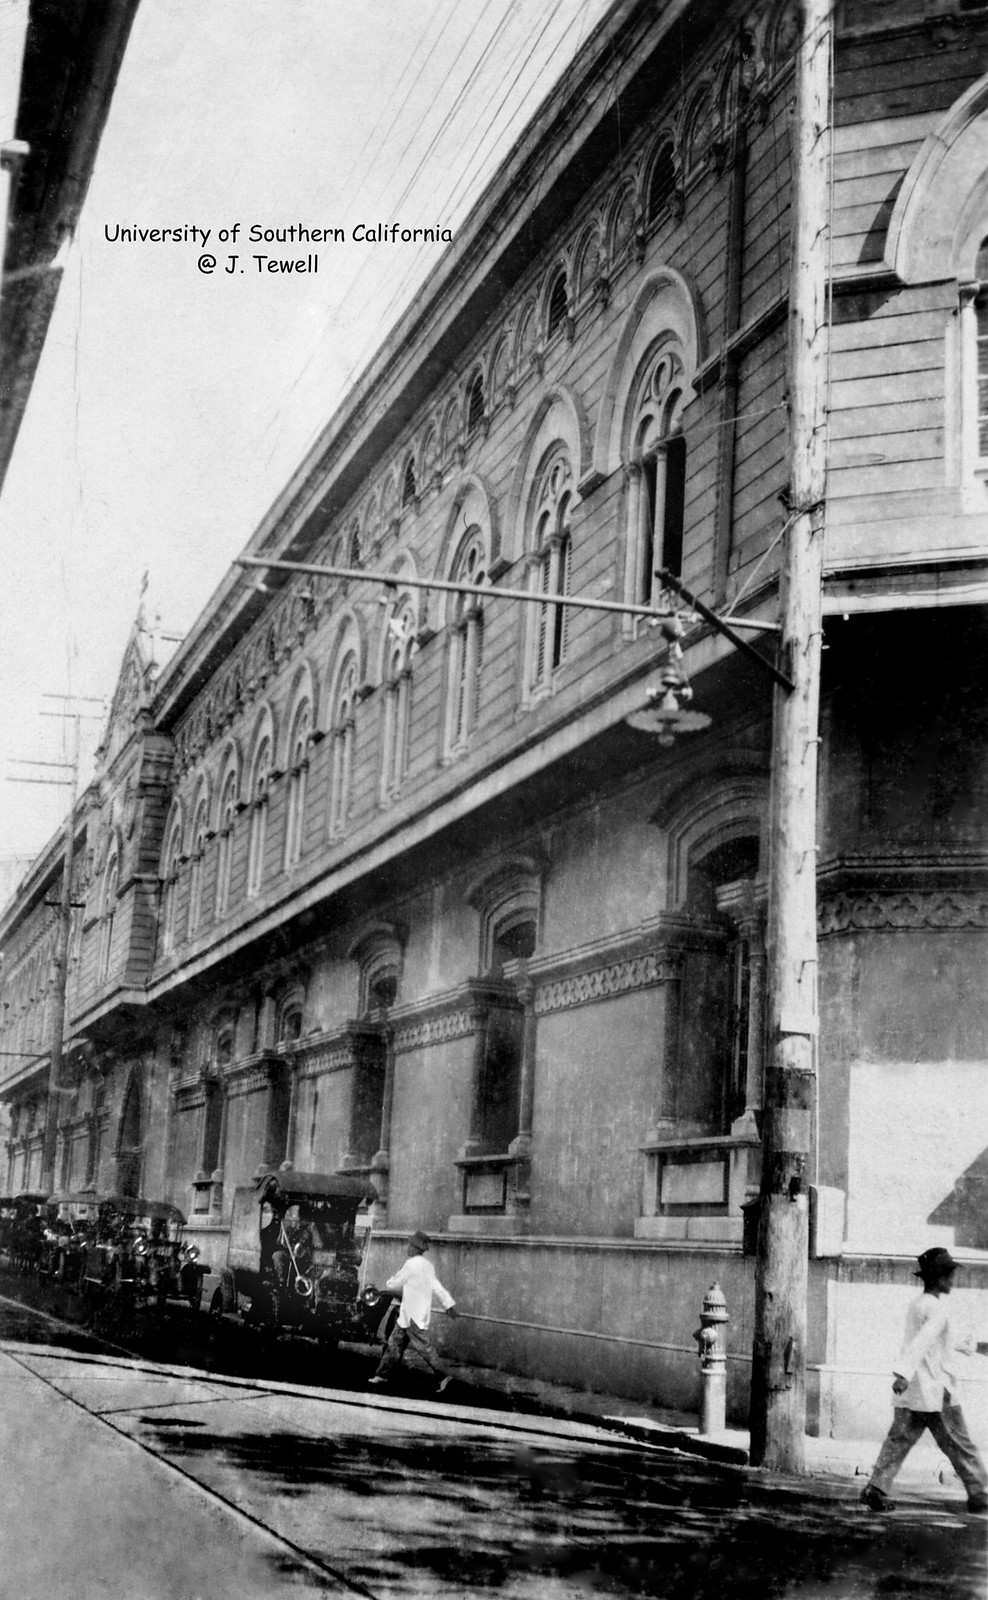 (2) St. Paul's Hospital, Intramuros, Manila, Philippines, 1927